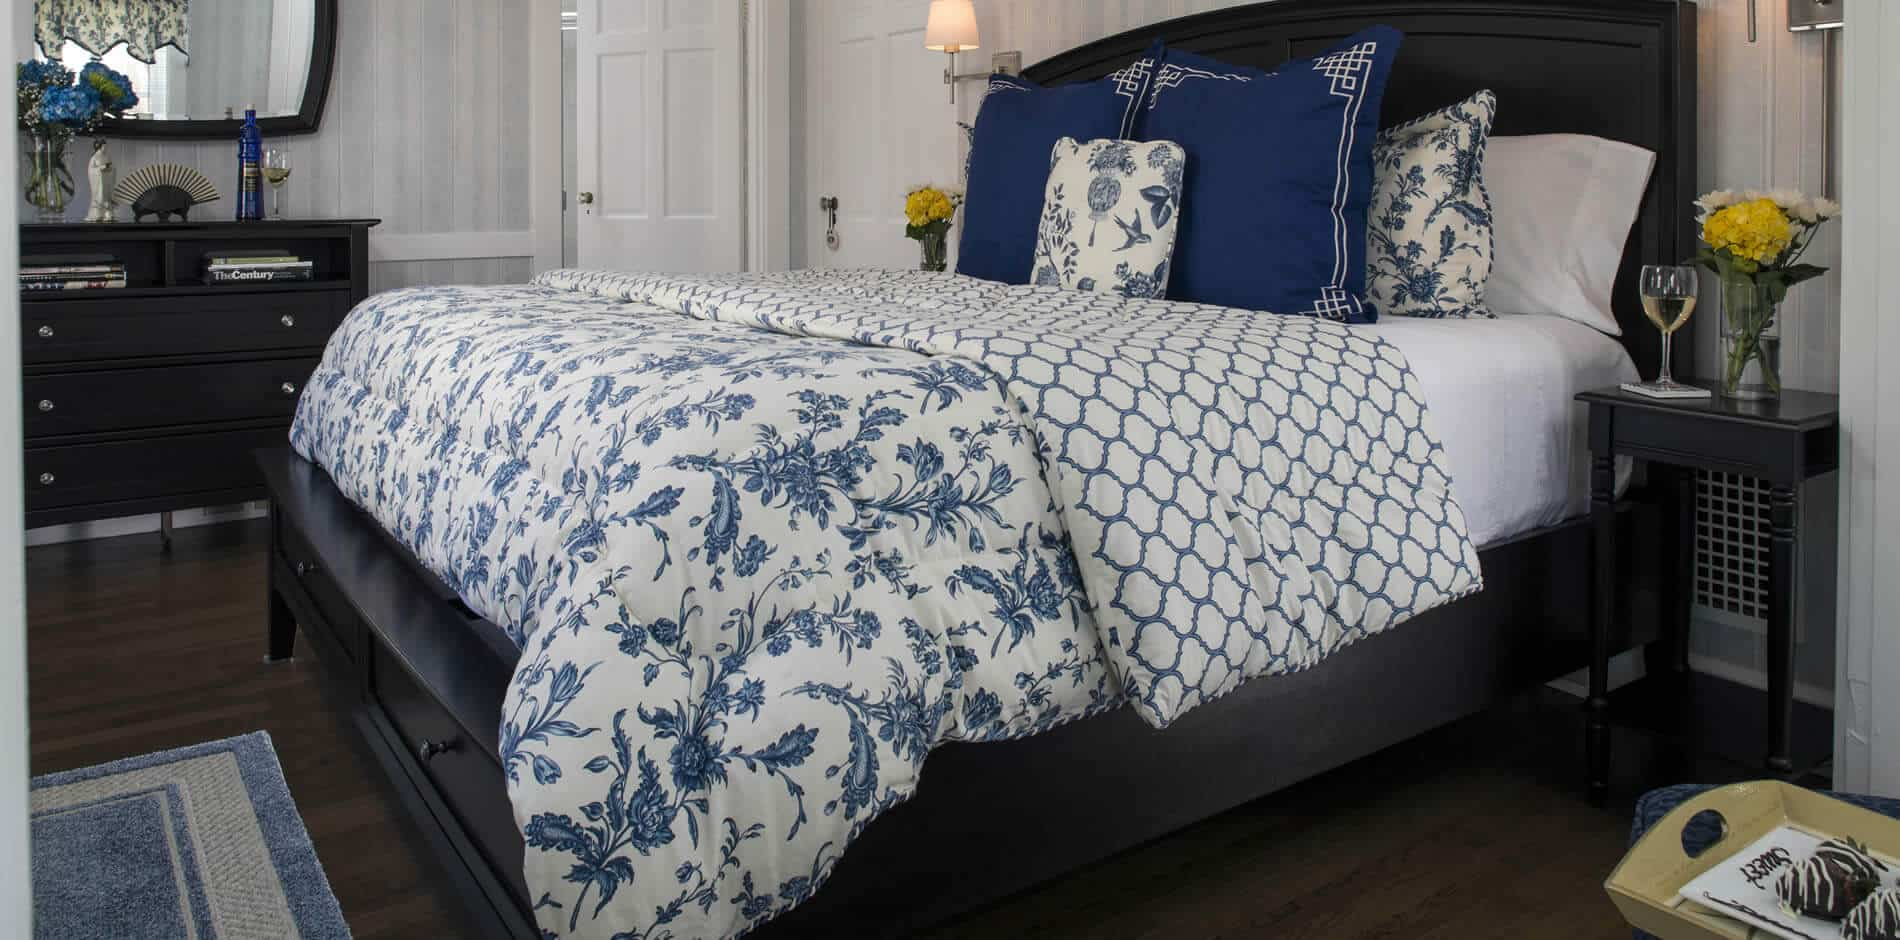 Elegant guest room with dark brown sleigh bed, blue and white bedding, wood floors, and dresser with mirror